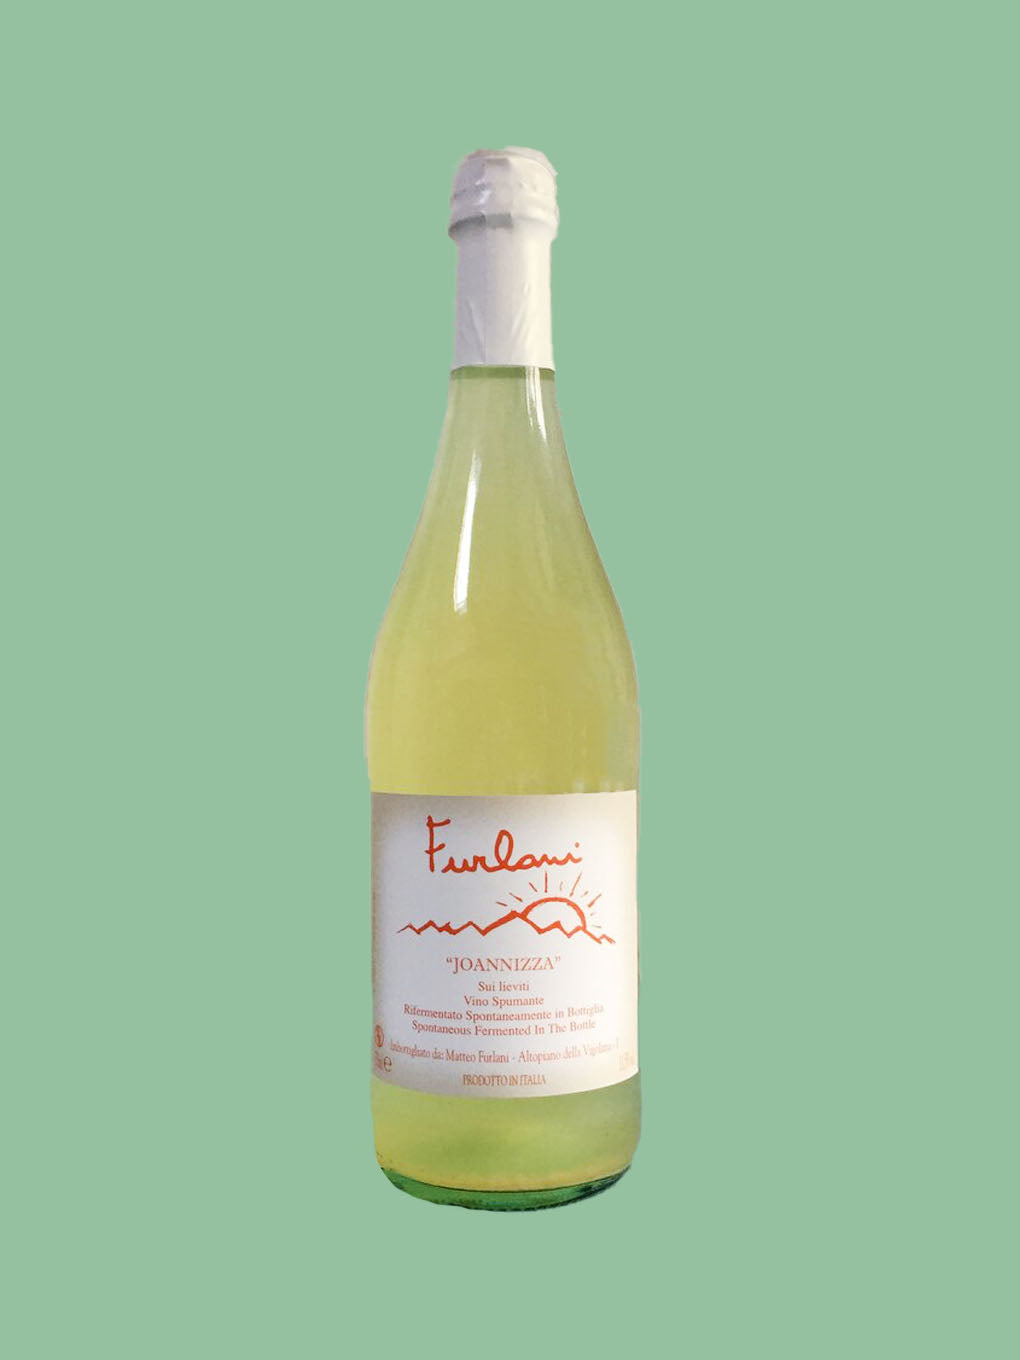 white wine bottle with white lid against green background